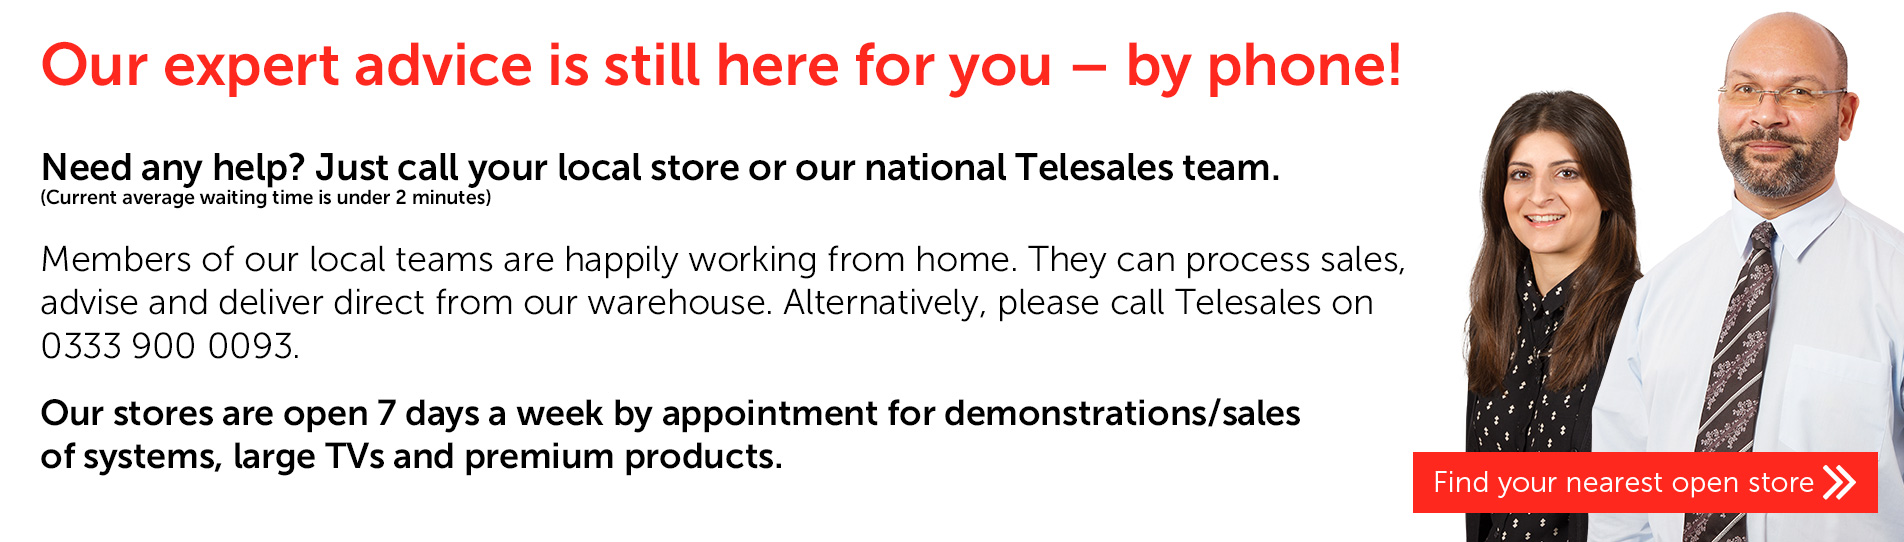 We're still here to give you our expert advice for all your home entertainment needs - by phone and online!